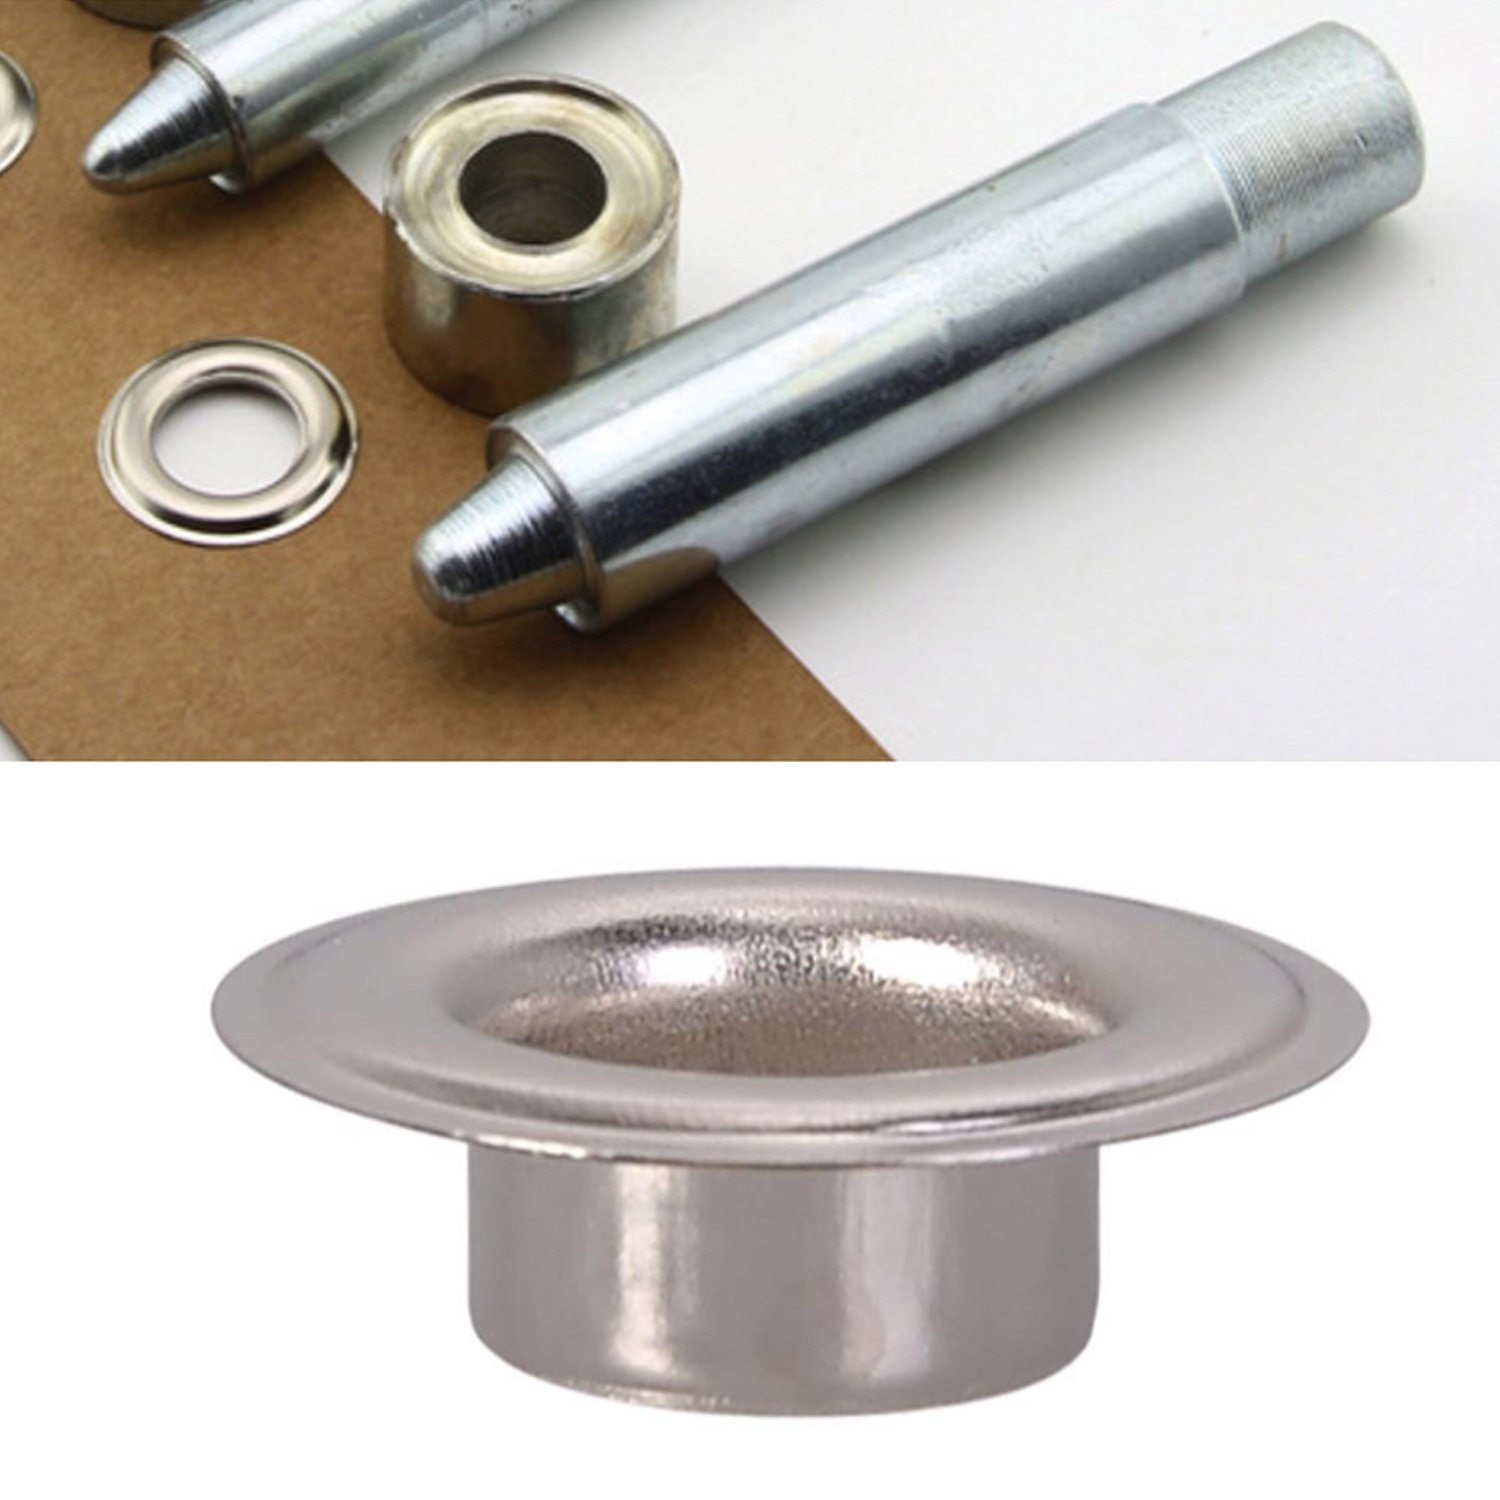 Trimming Shop Set of 3: Die Set, Hollow Hole Punch, and 100 Pieces of 4mm Silver Eyelets - Grommet Setting Tool Kit for For Clothing, Leathercraft and Scrapbooking - Washers Included